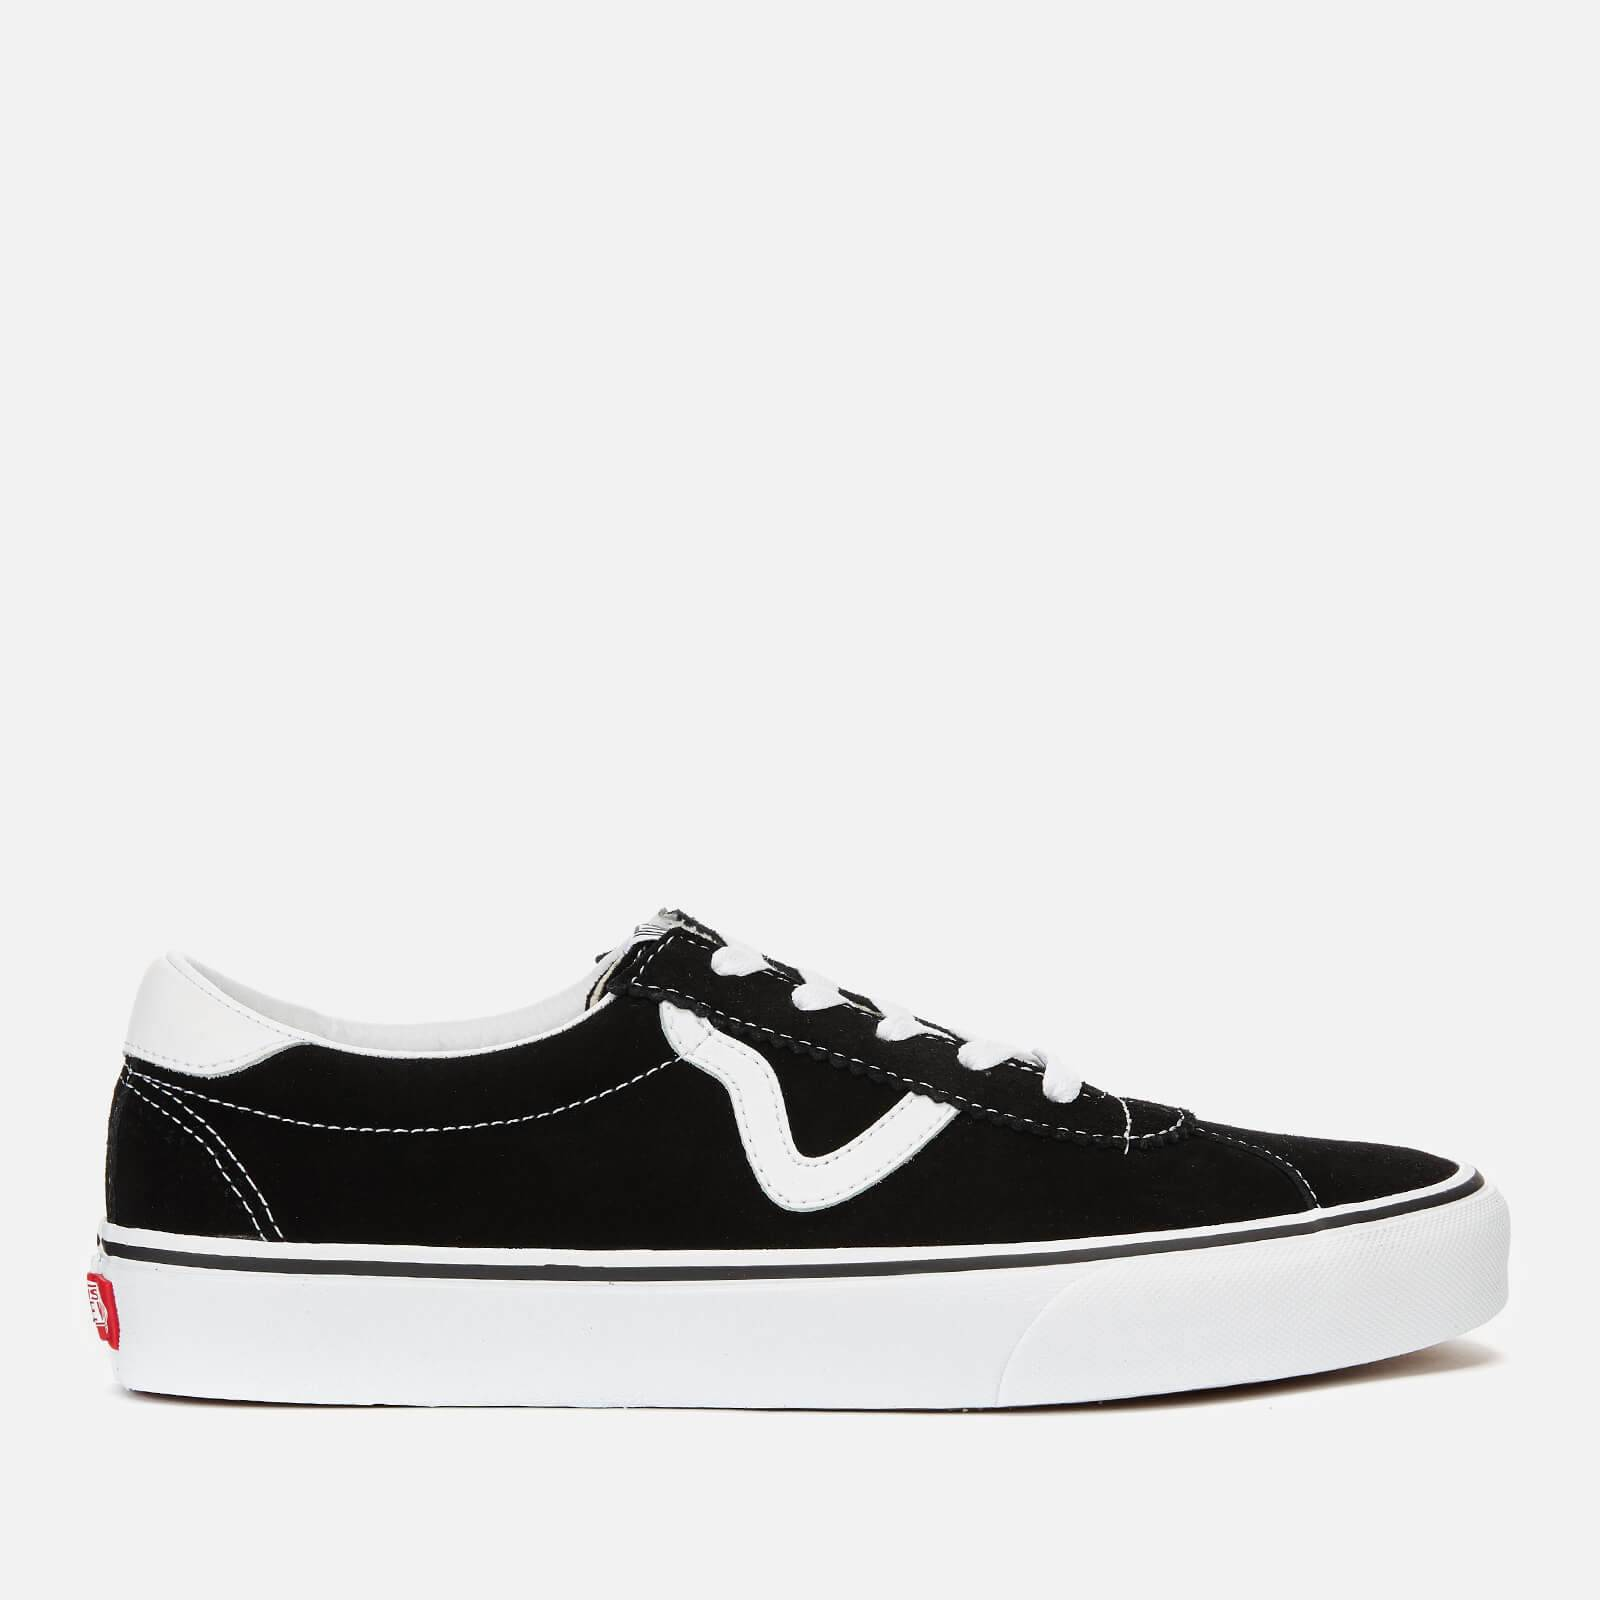 Vans Sport Suede Trainers - Black - UK 11